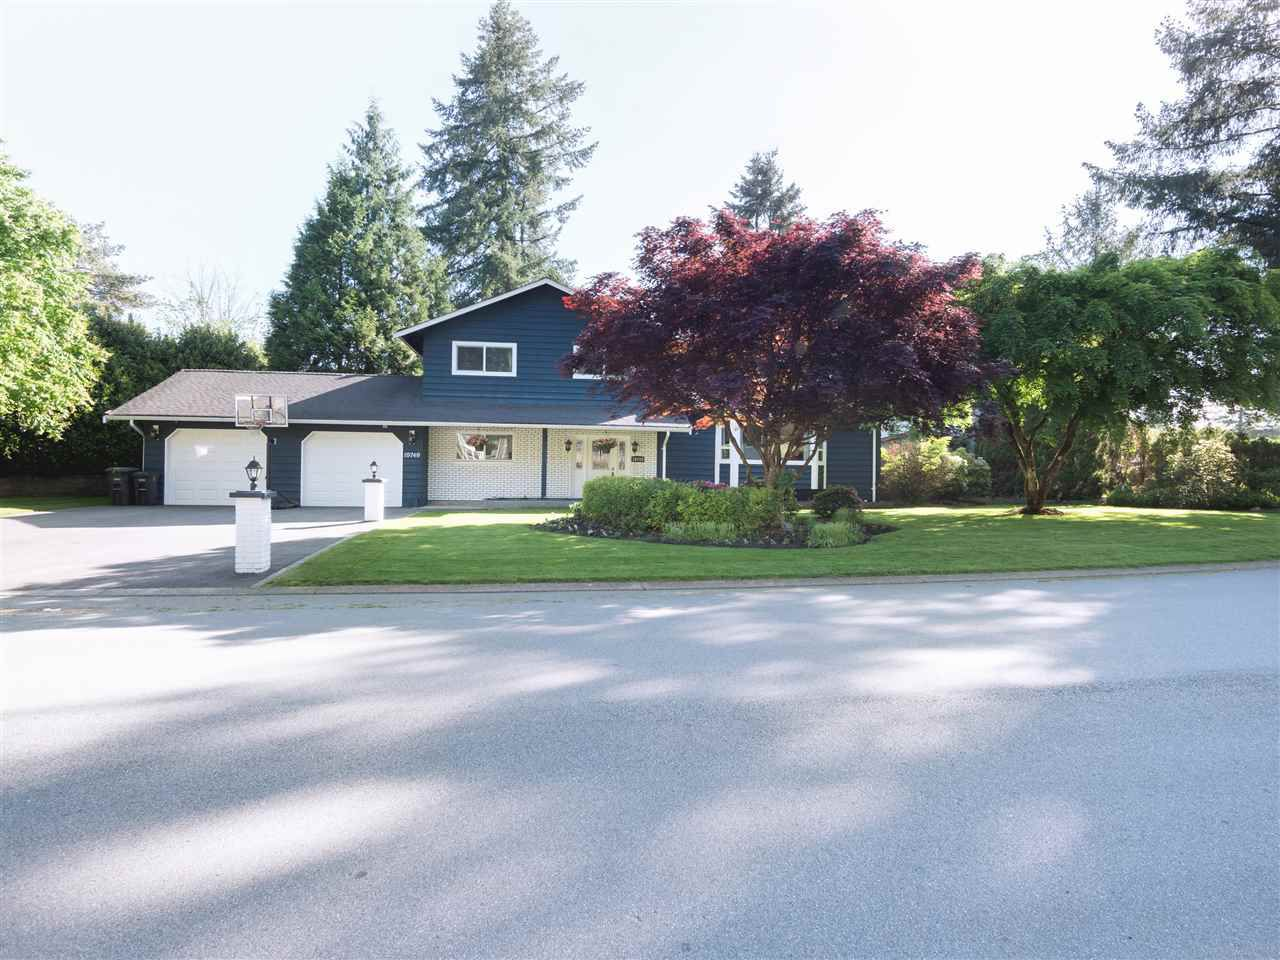 Main Photo: 19749 N WILDWOOD CRESCENT in Pitt Meadows: South Meadows House for sale : MLS®# R2338801